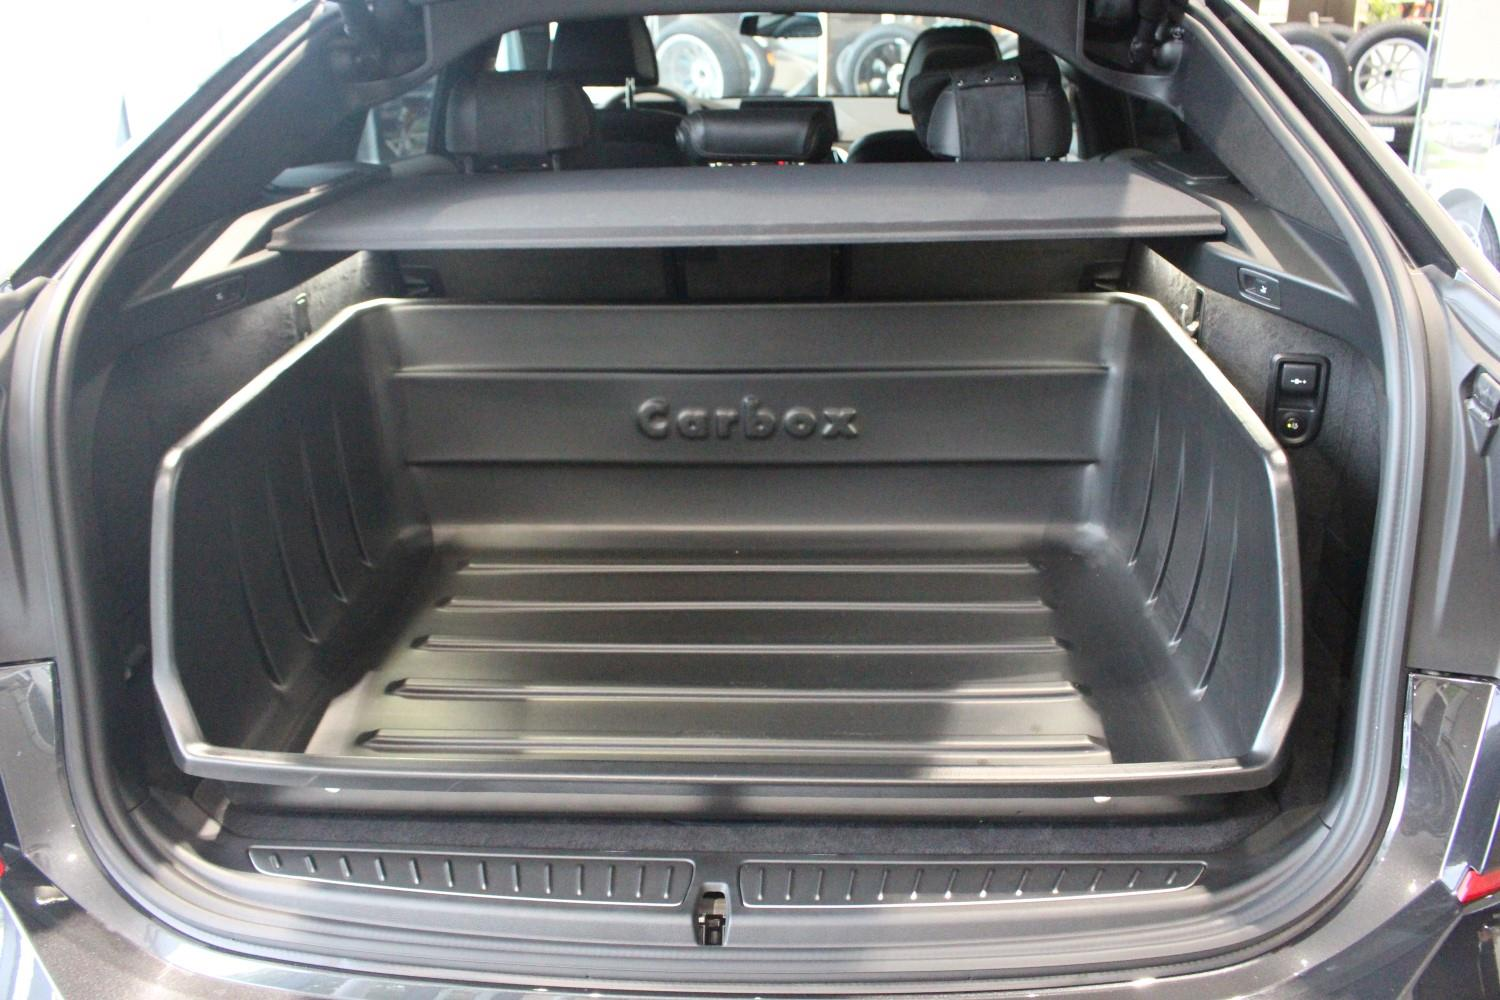 Boot liner BMW 6 Series GT (G32) 2017-present 5-door hatchback Carbox Classic YourSize 106 high sided